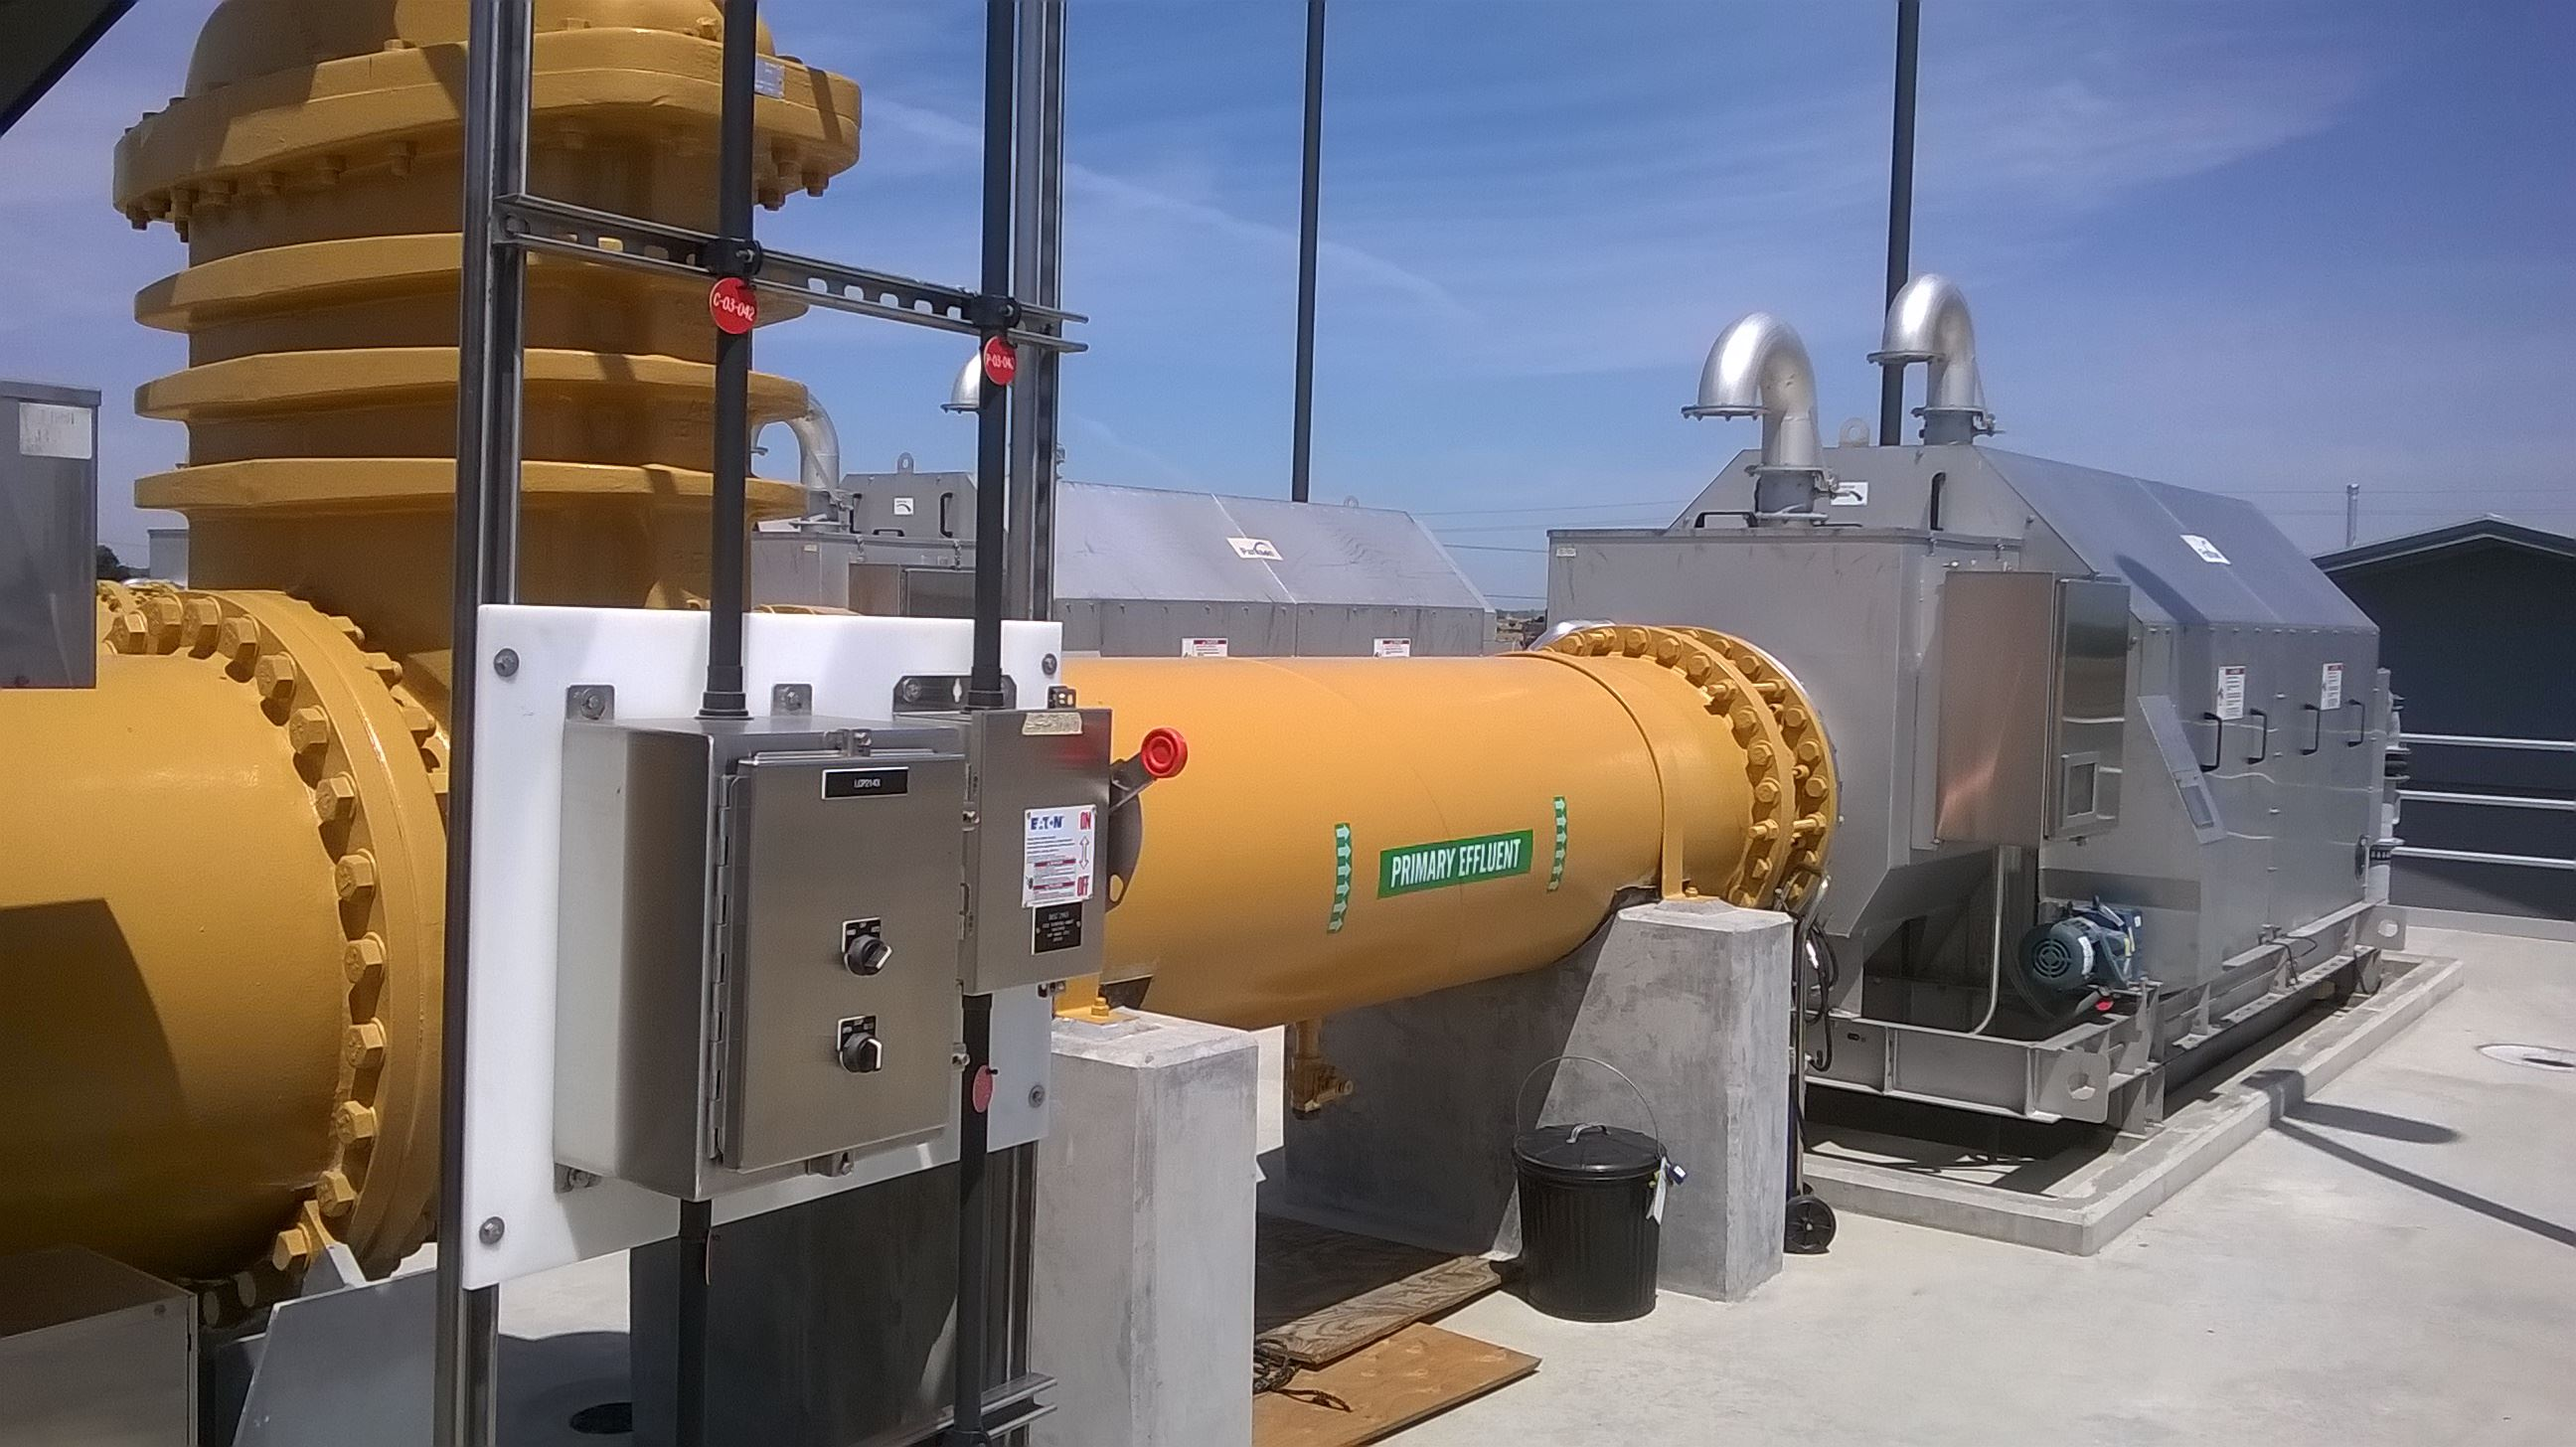 a large pipe feeds wastewater into an enclosed quarter inch screen filter to remove any remaining solids